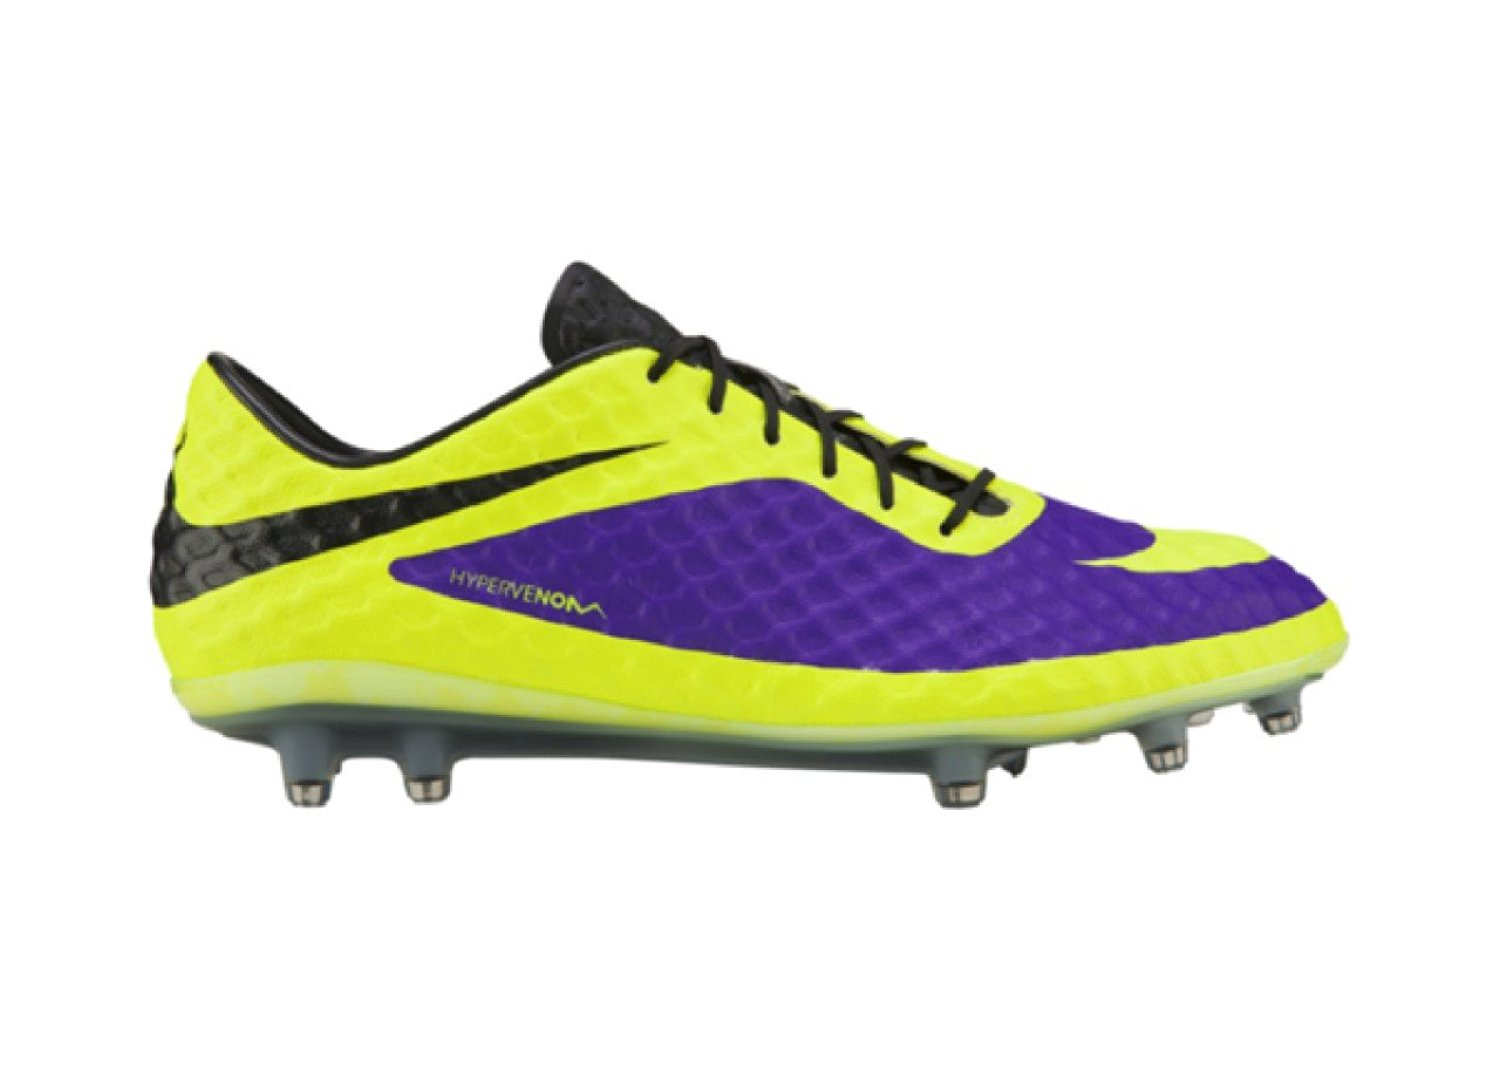 wholesale dealer 8a6e1 2dd0c nike hypervenom phantom FG mens football boots 599843 570 soccer cleats  firm ground